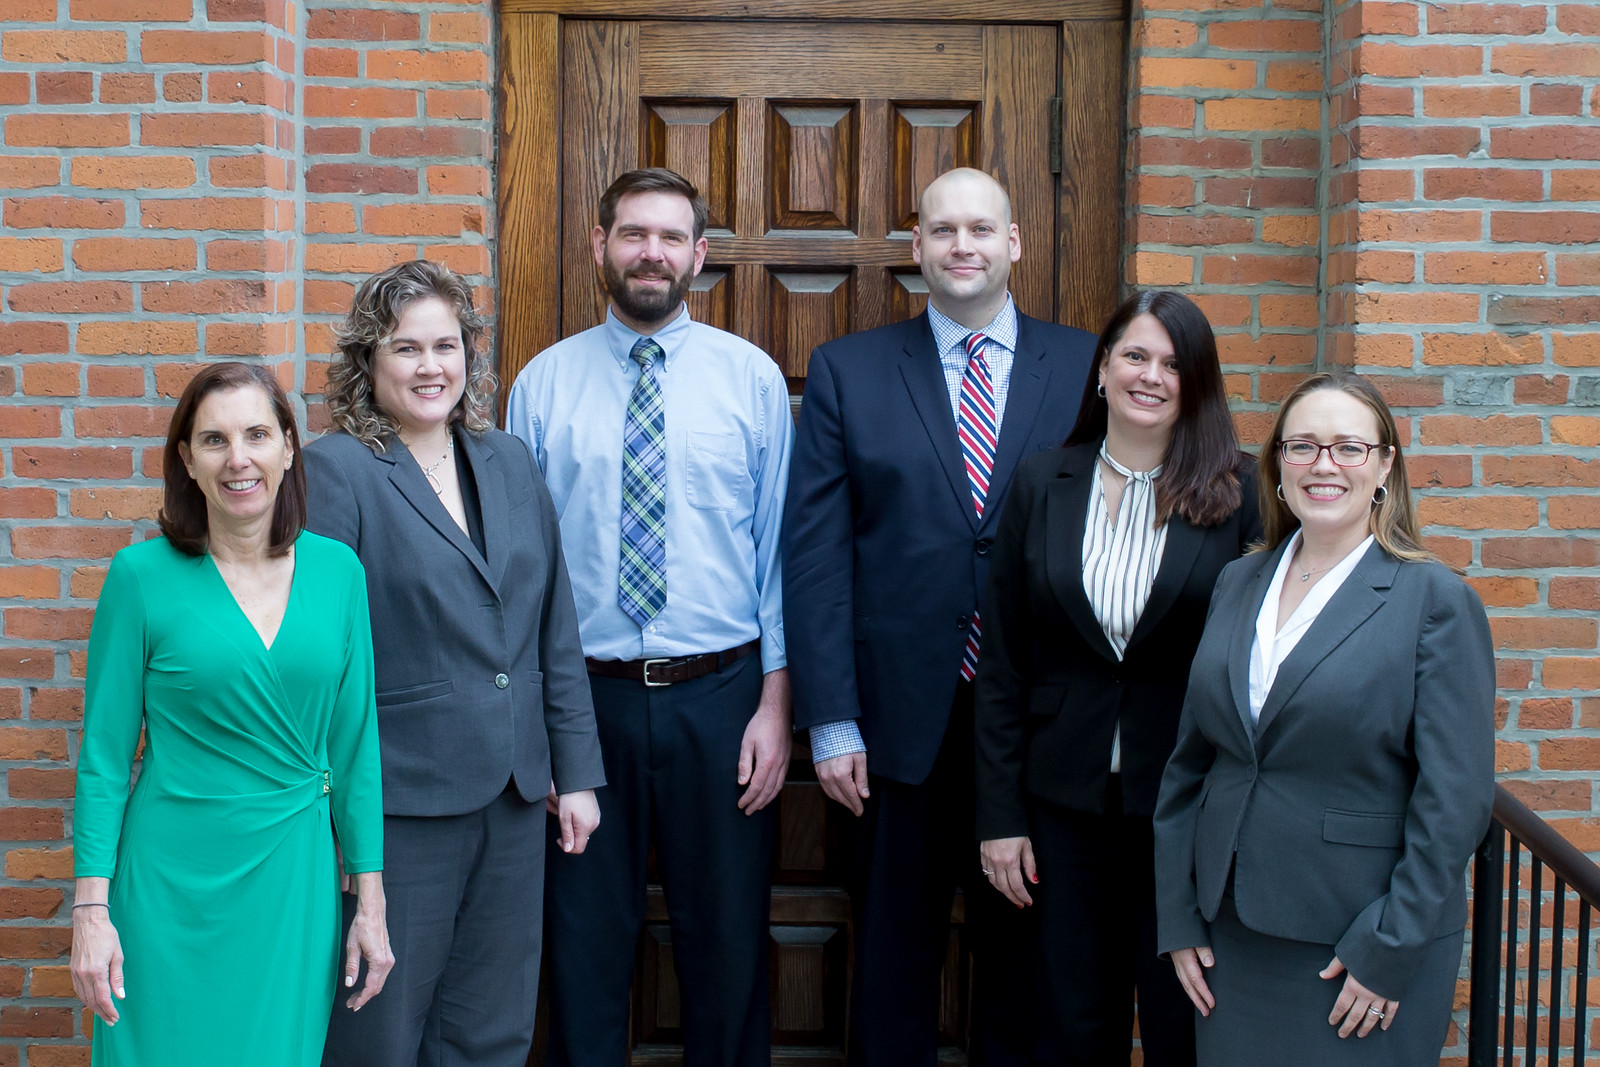 Attorneys and staff of The Nigh Law Group in Columbus, Ohio